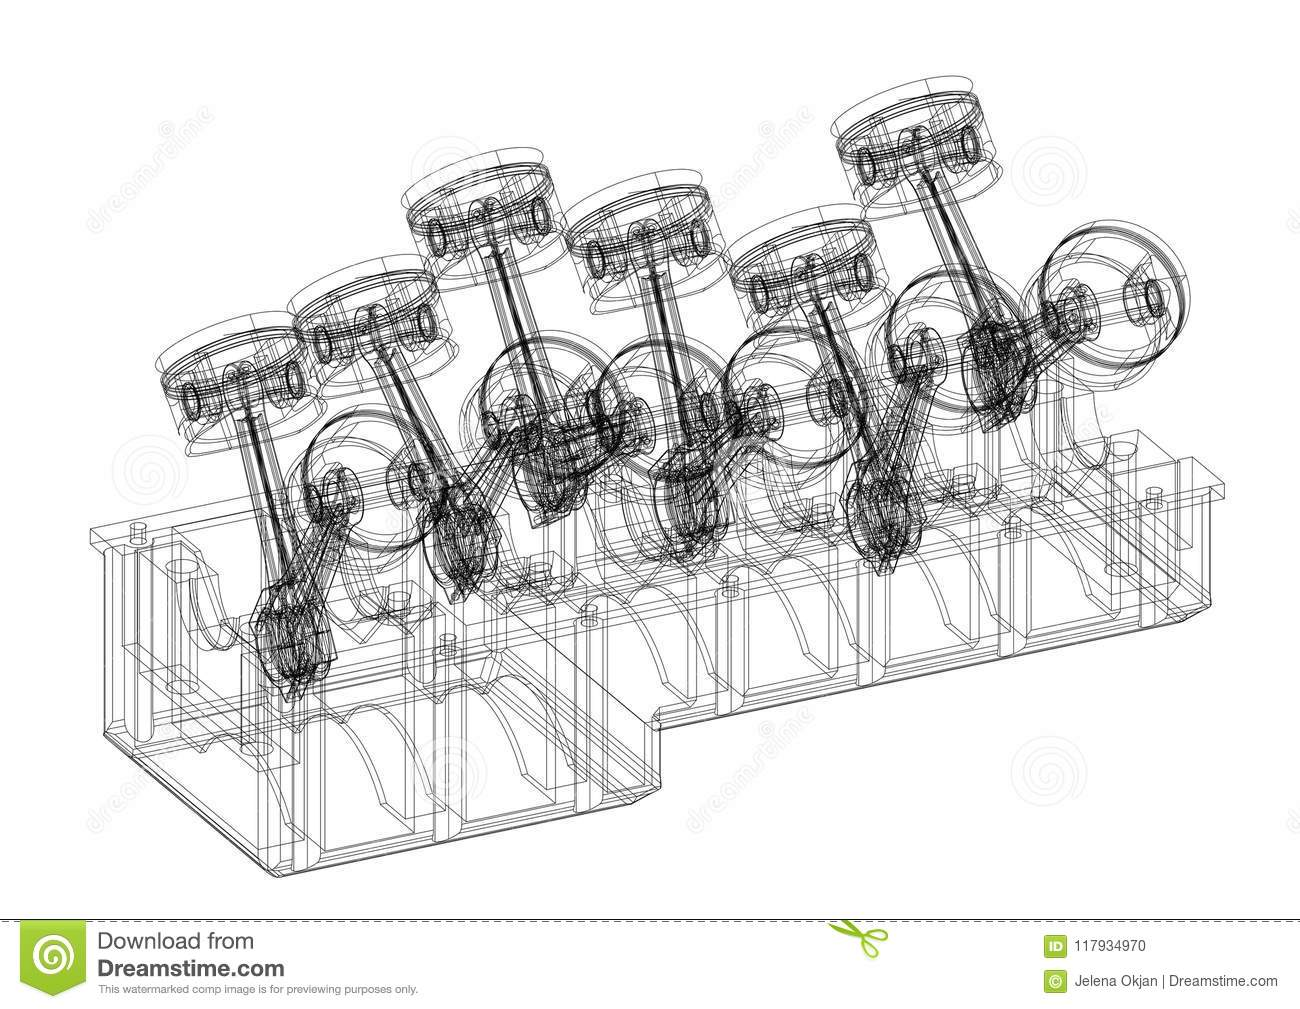 Engine Pistons Architect Blueprint Isolated Stock Illustration Steam Piston Diagram Download Of Architectural Energy